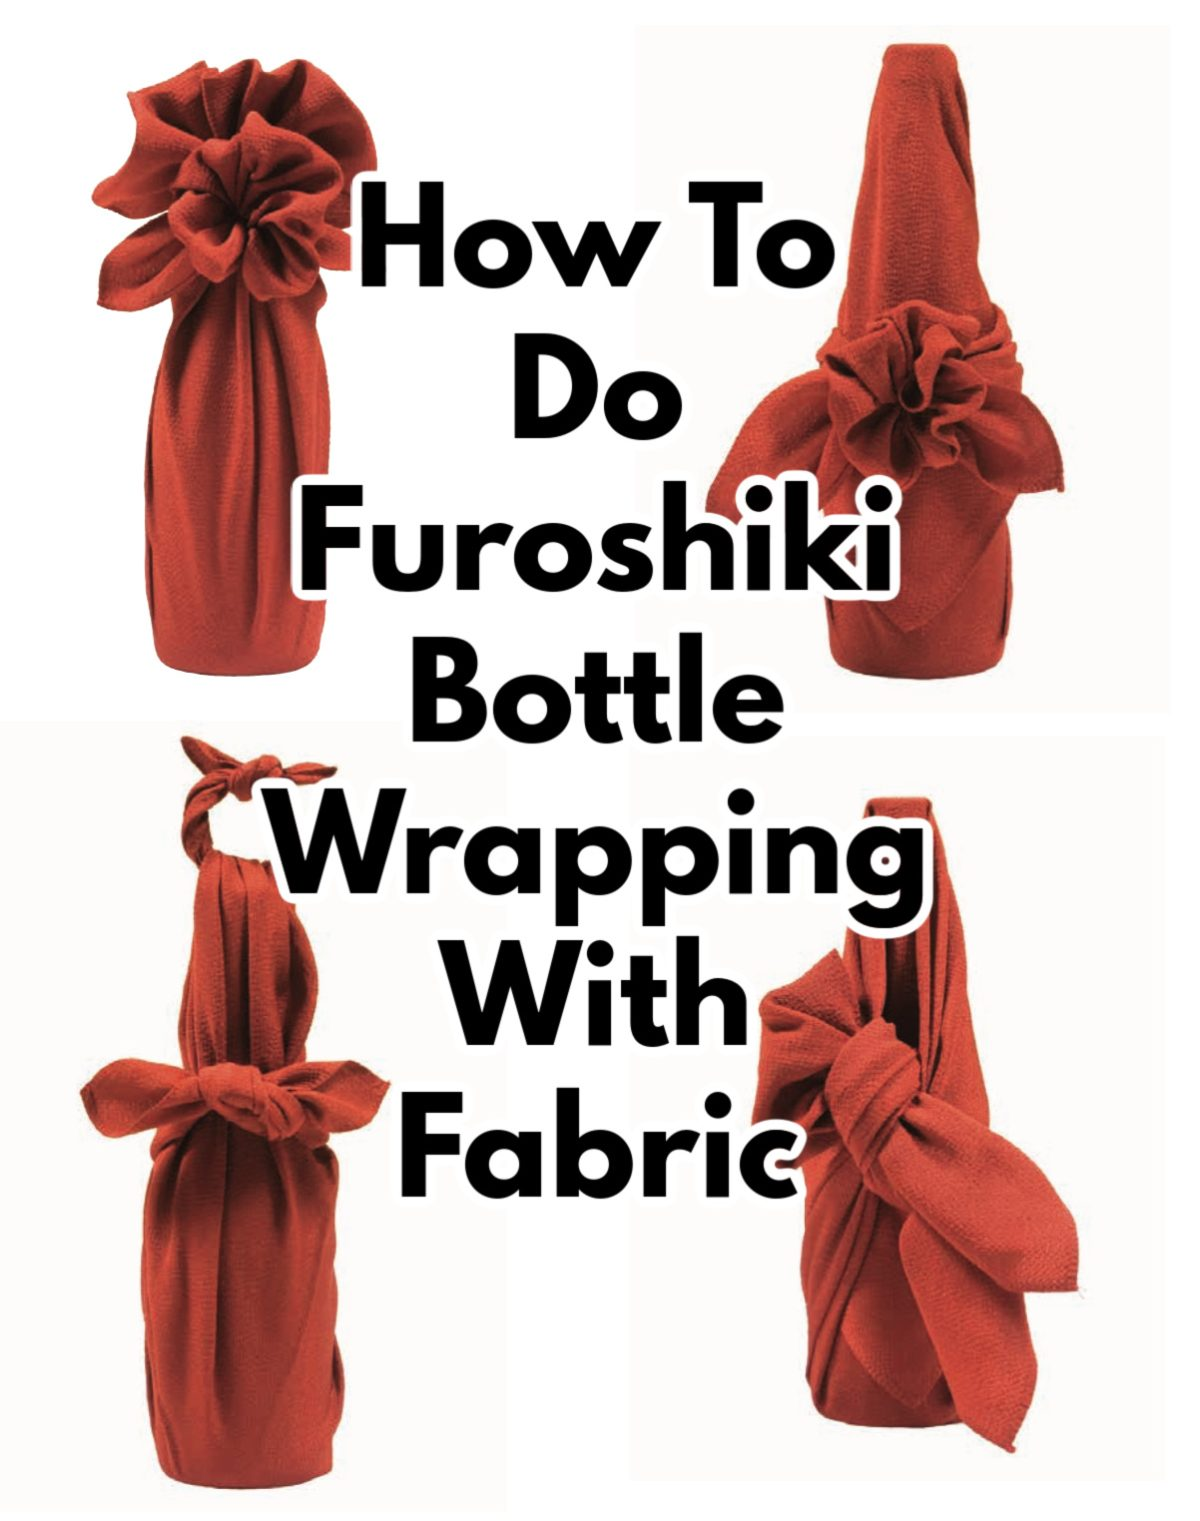 Learn how to Christmas gift wrap with fabric (Furoshiki) with these simple steps